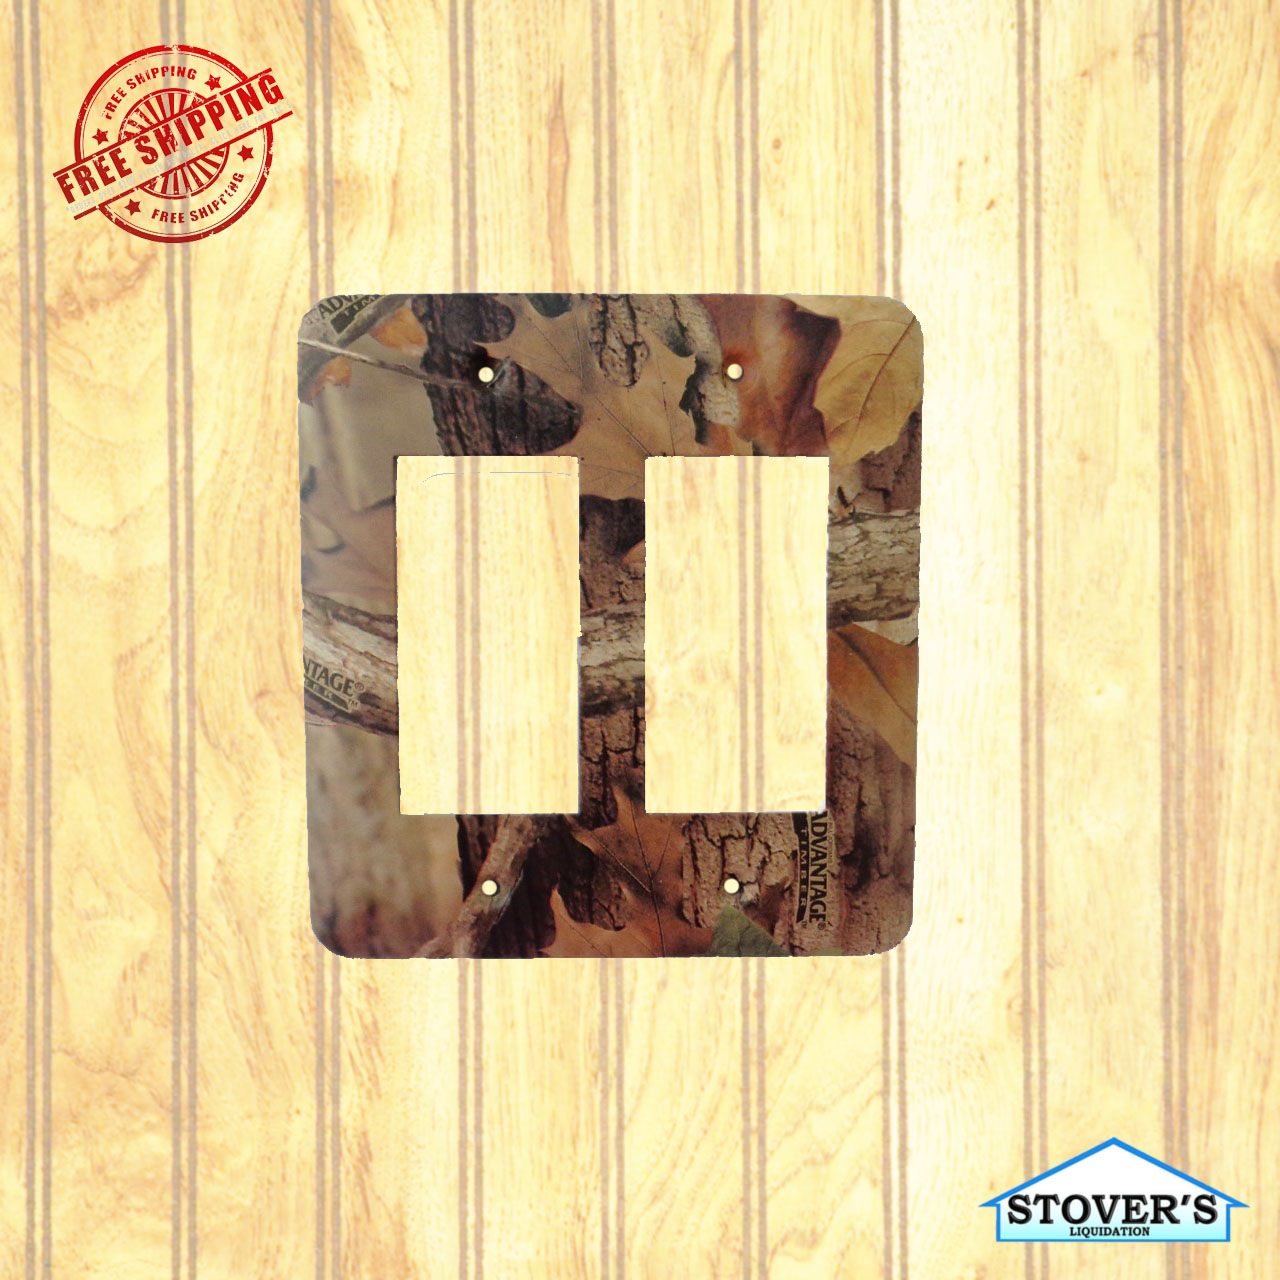 63112-double-rocker-light-switch-plate-camo-advantage-timber-stovers-liquidation.jpg